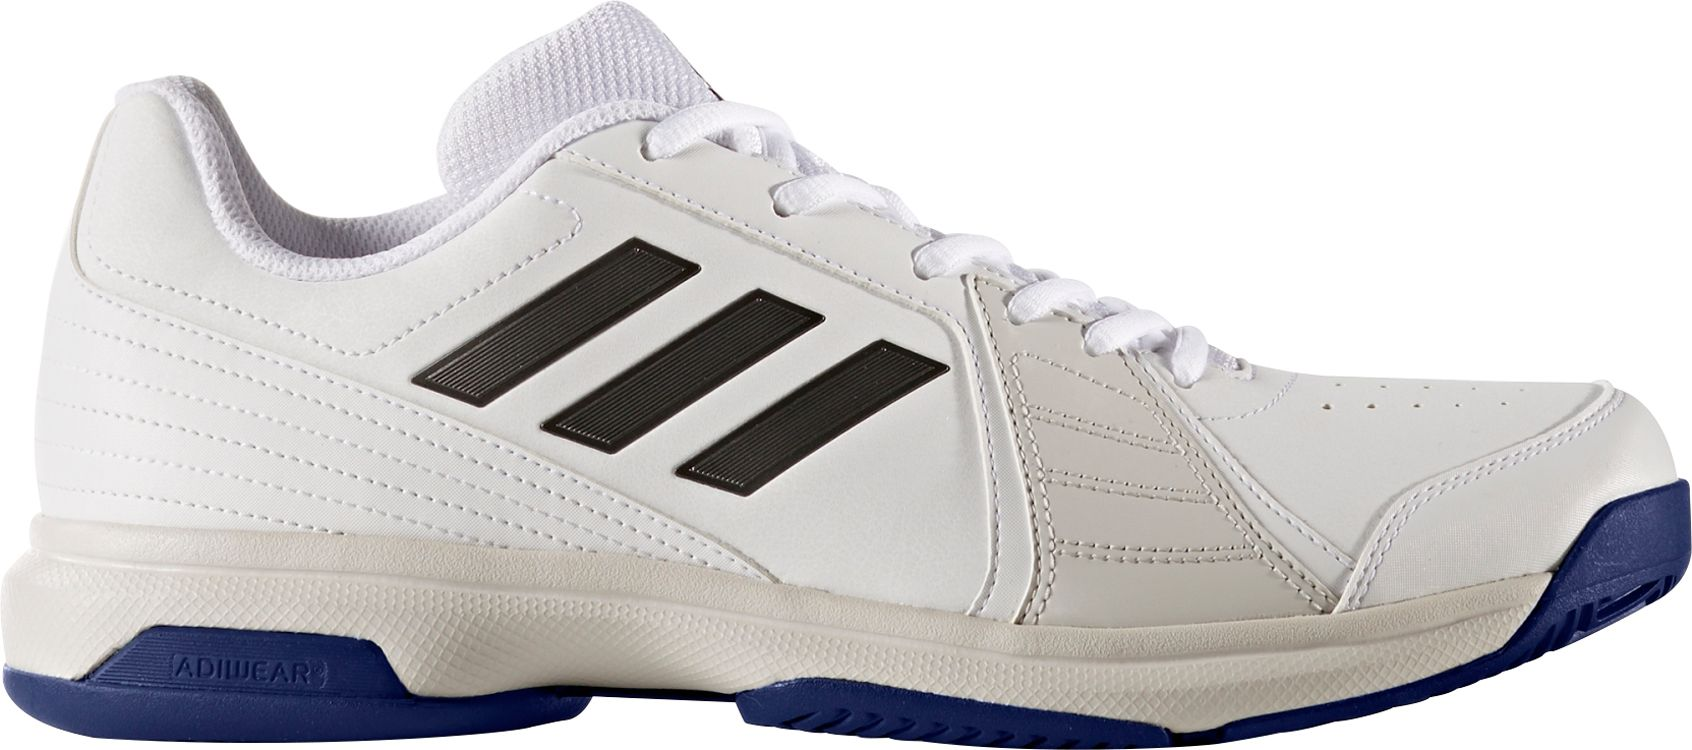 Mens White Wide Athletic Shoes